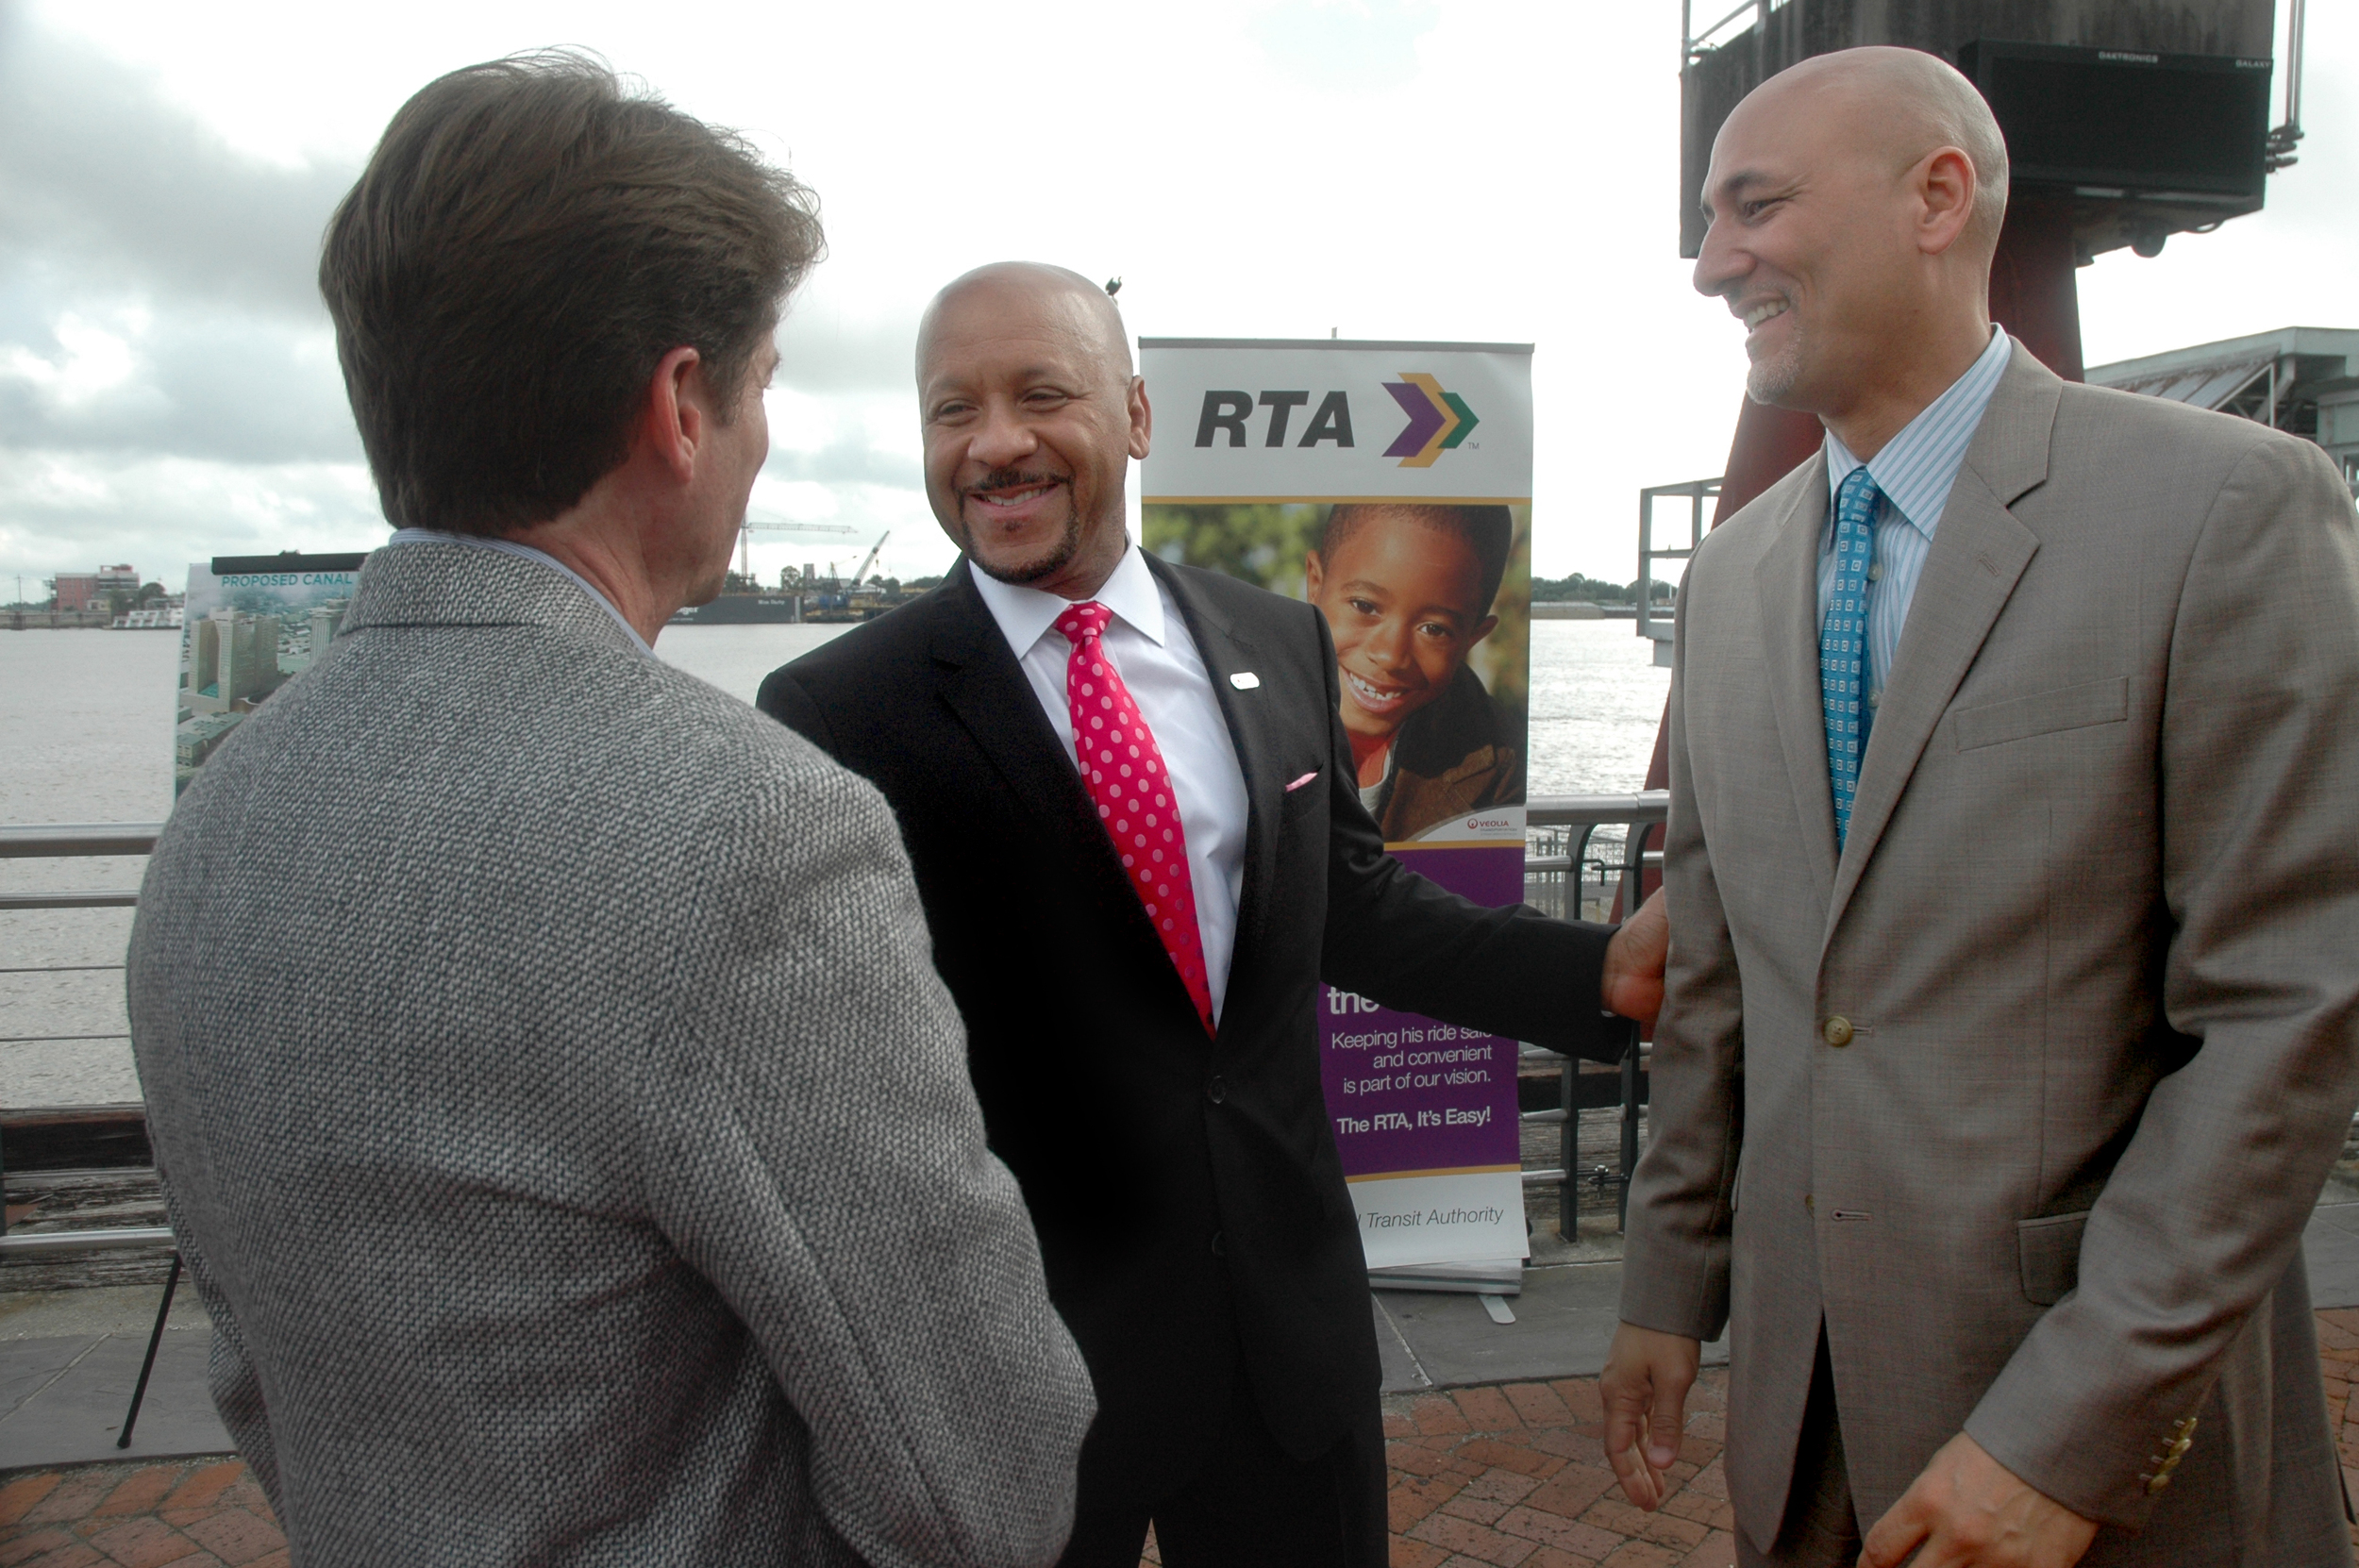 RTA CEO Justin Augustine, center, greets Infinity Engineering Principal Partners Bill Thomassie, left, and Raoul Chauvin after the press conference announcing the new Canal Street Ferry Terminal.